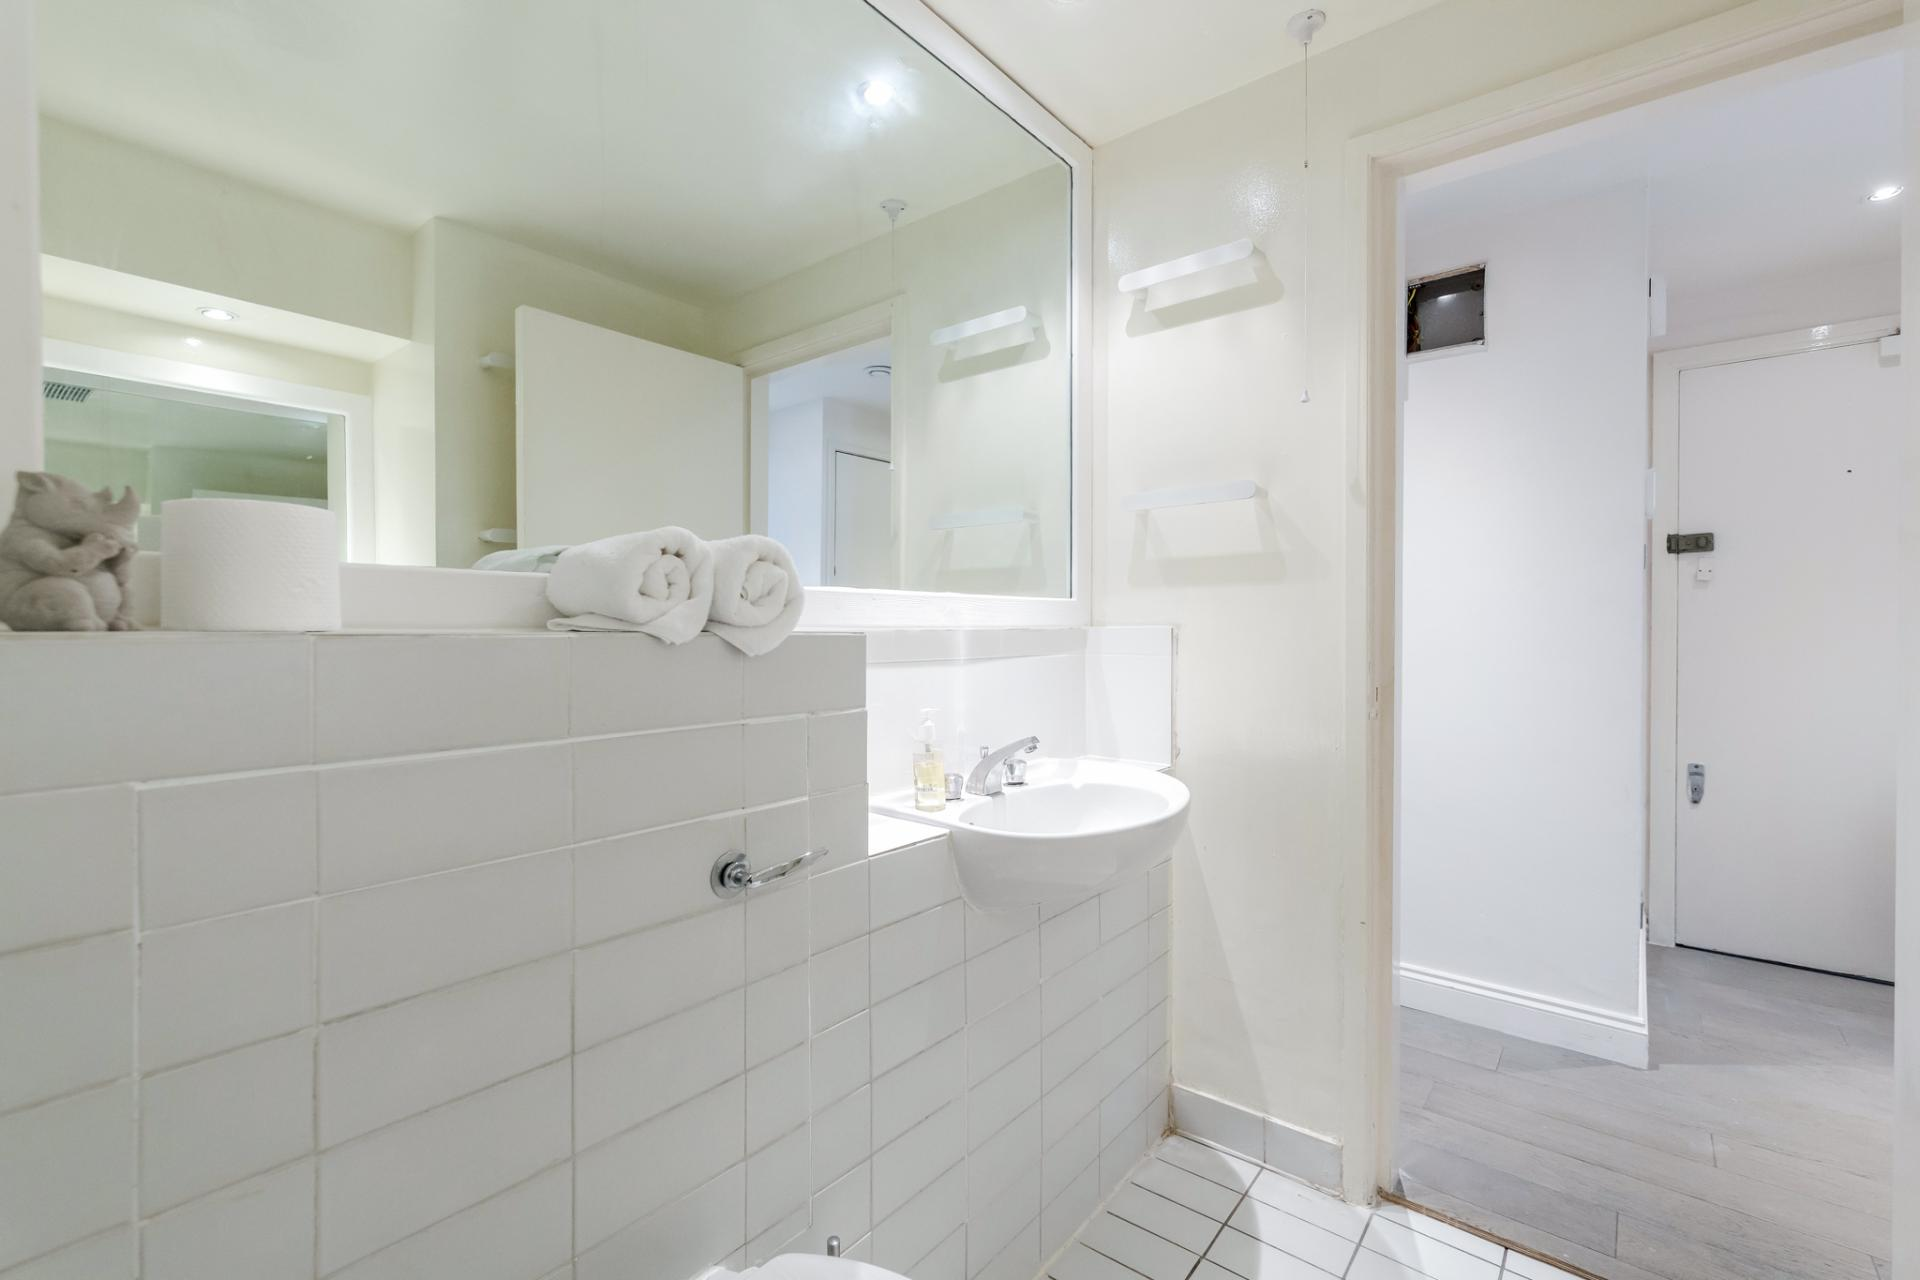 Sink at Earls Court Serviced Apartment, Kensington, London - Citybase Apartments